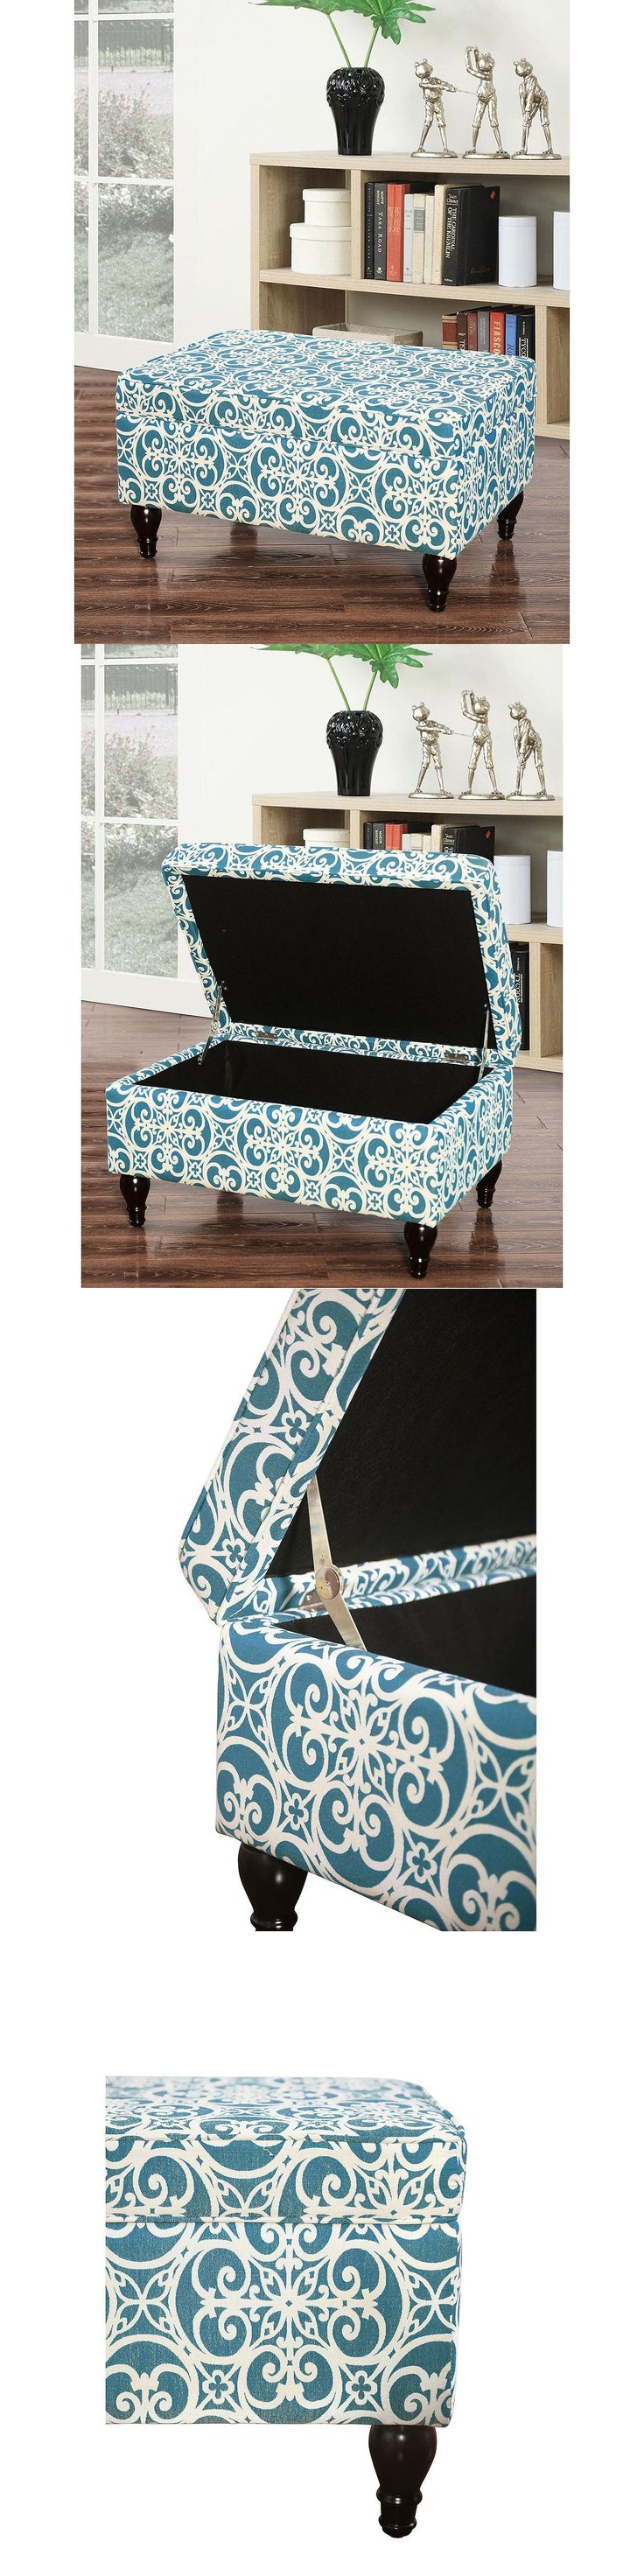 Ottomans Footstools and Poufs 20490: Paisley Storage Ottoman Grey Fabric Print Footstool Pouff Bench Seat Organizer -> BUY IT NOW ONLY: $79.99 on eBay!